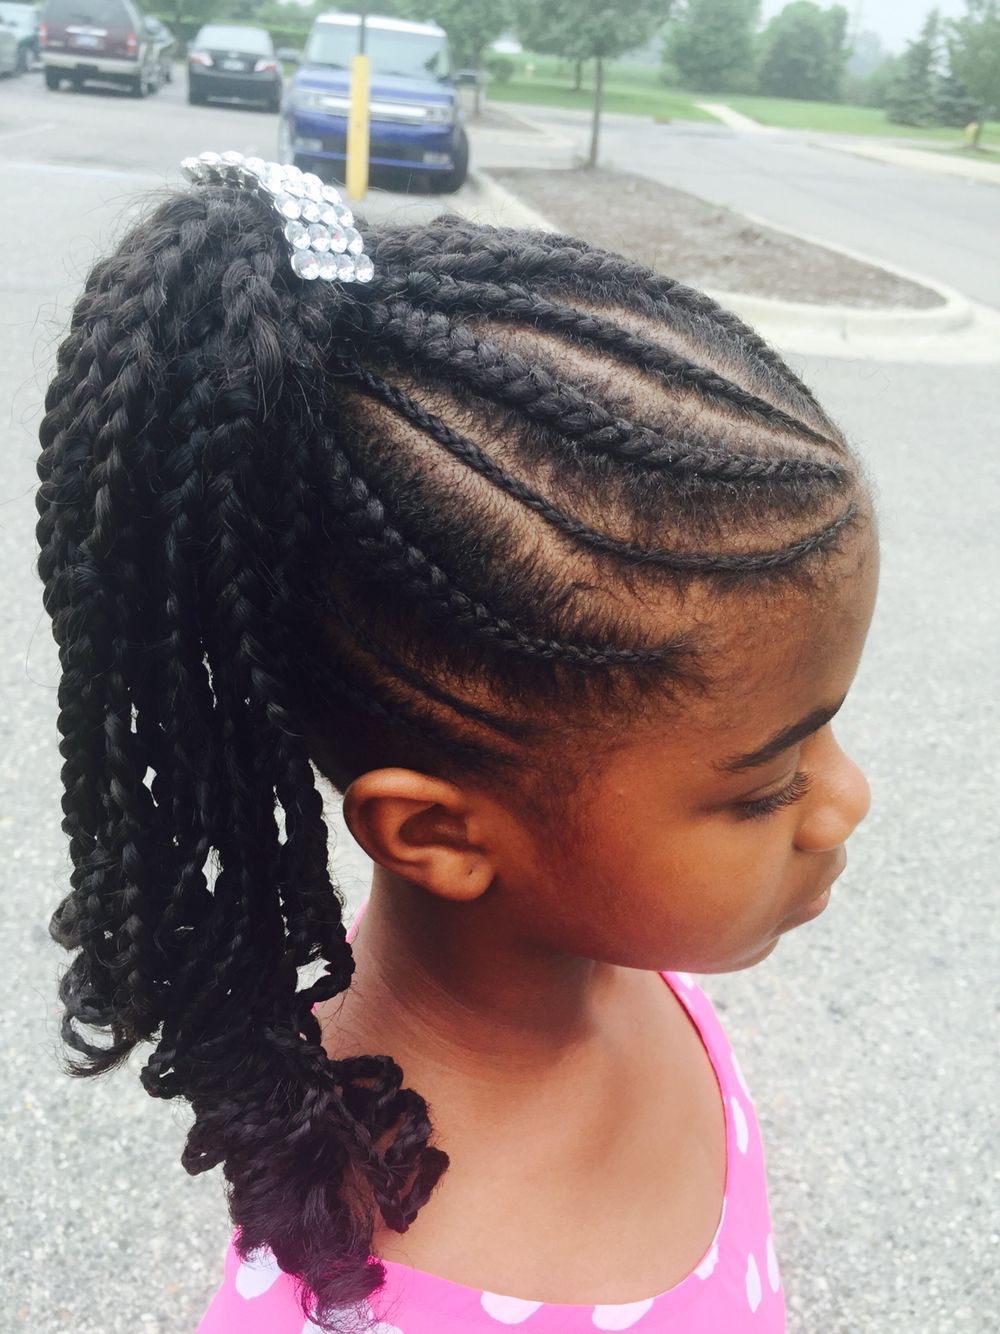 African American High Braid Pony Tail Ponytail Hairstyles